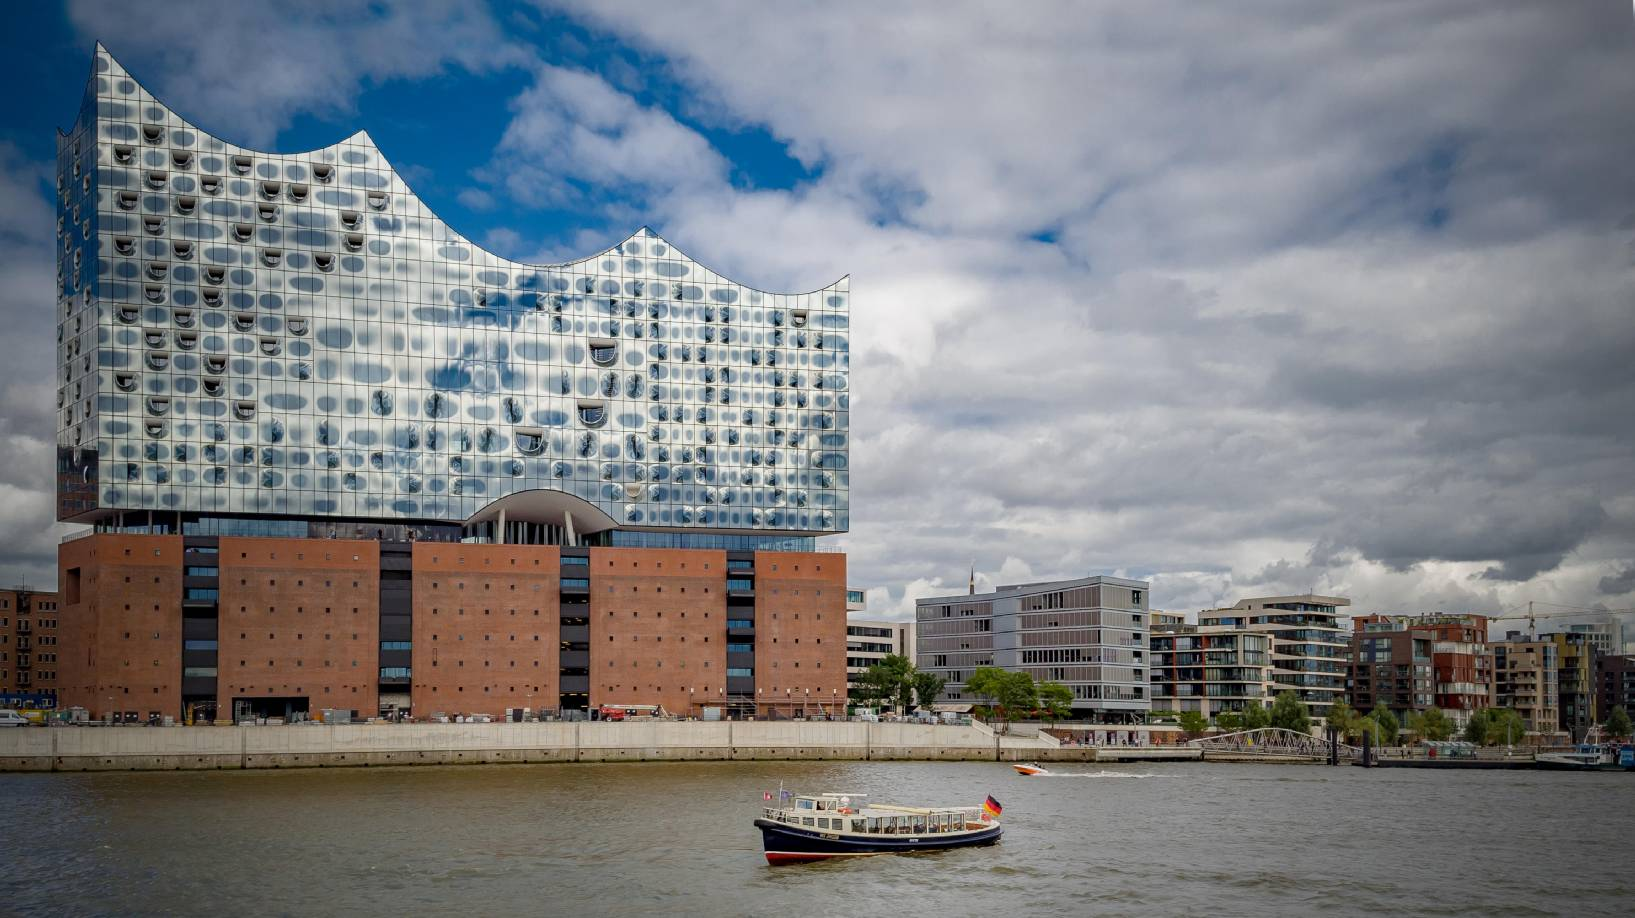 Foto by Hotel Louis C. Jacob Hamburg - MS Jacob und Elbphilharmonie Hamburg